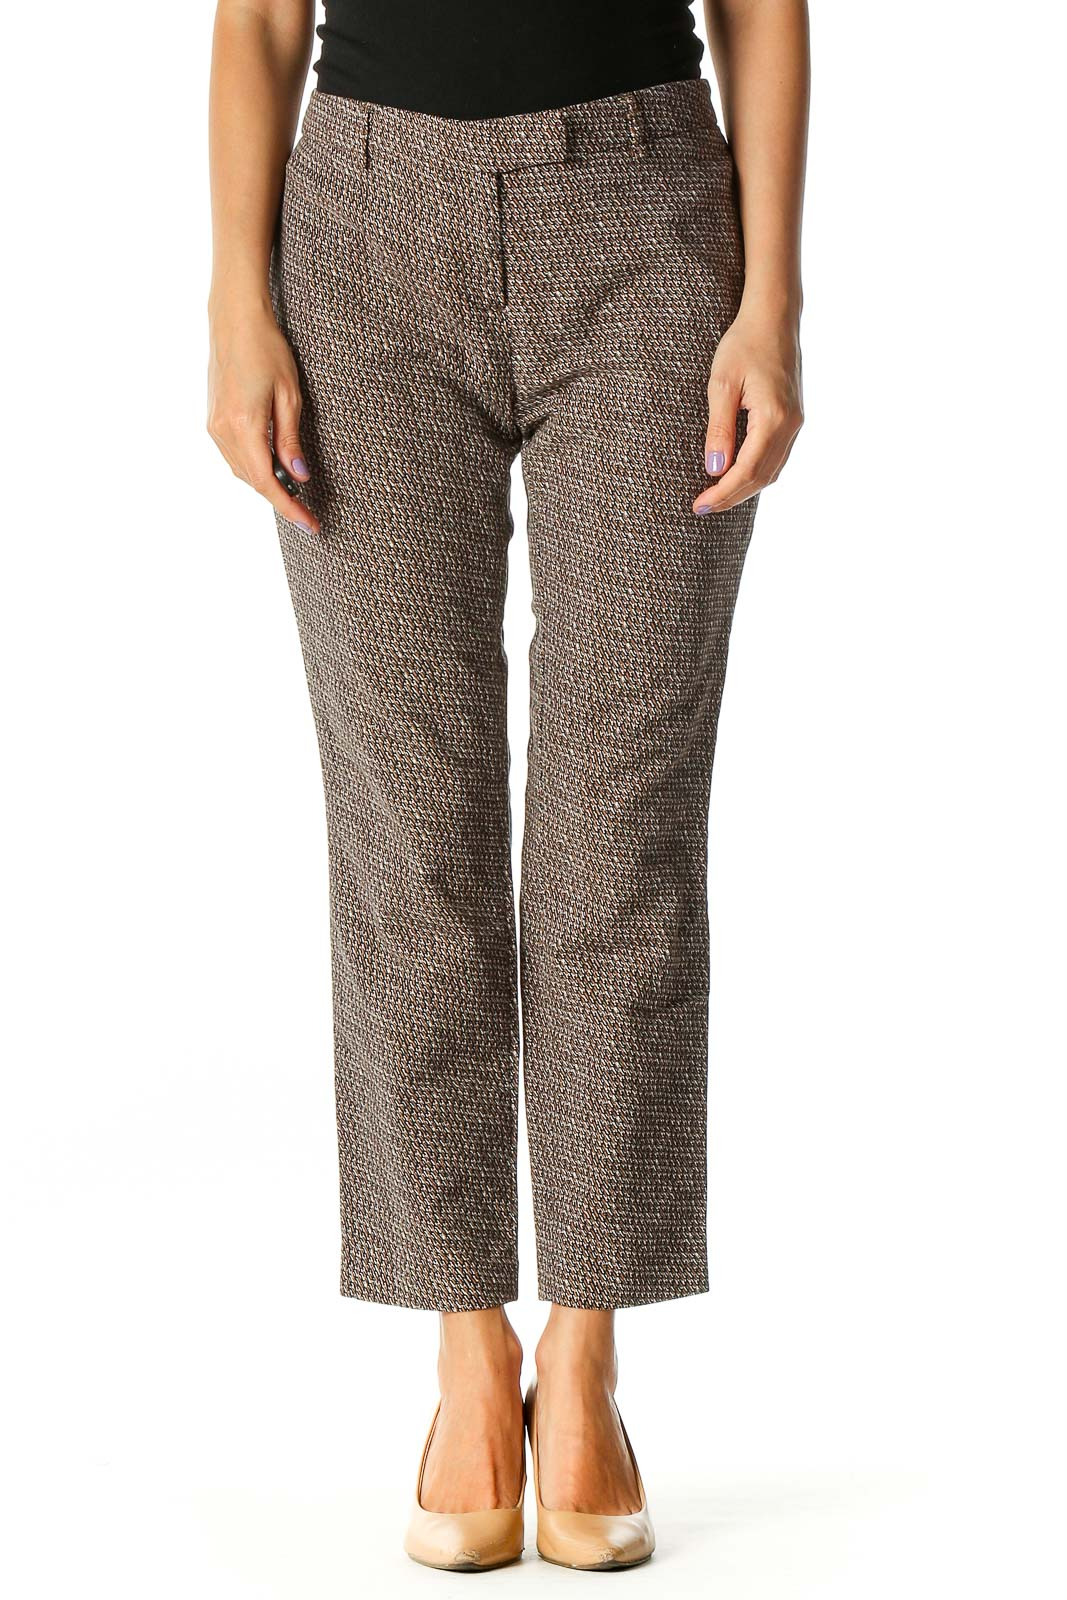 Brown Geometric Print Casual Trousers Front